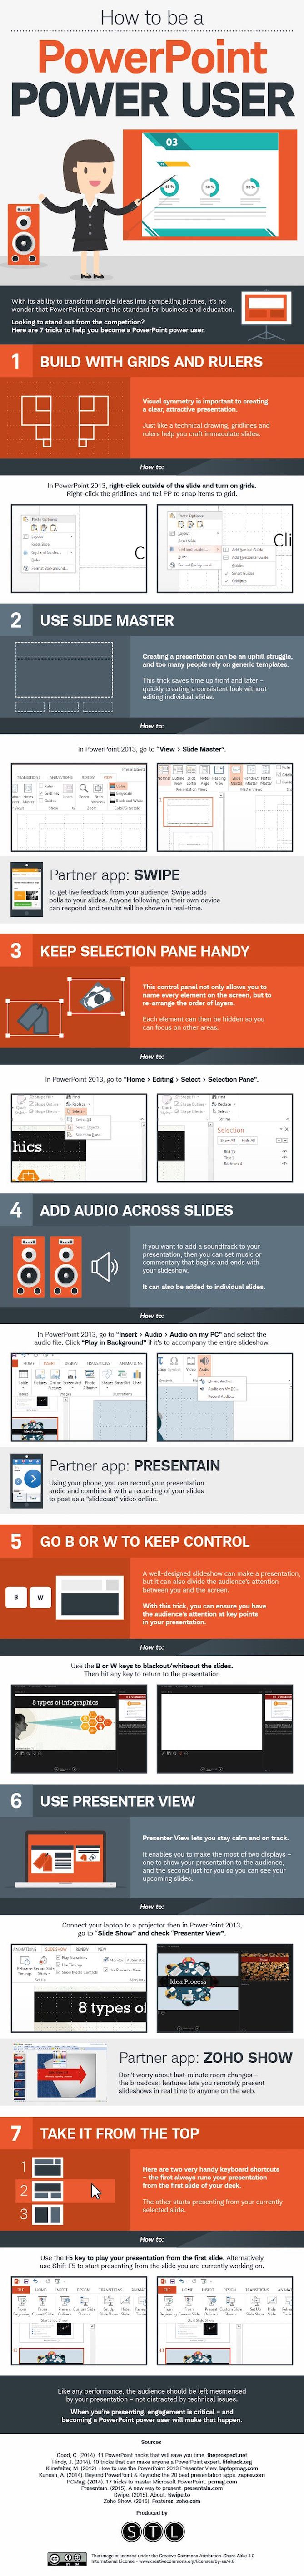 7 Little-Known Tricks for Creating More Powerful Pitch Decks With PowerPoint [Infographic]